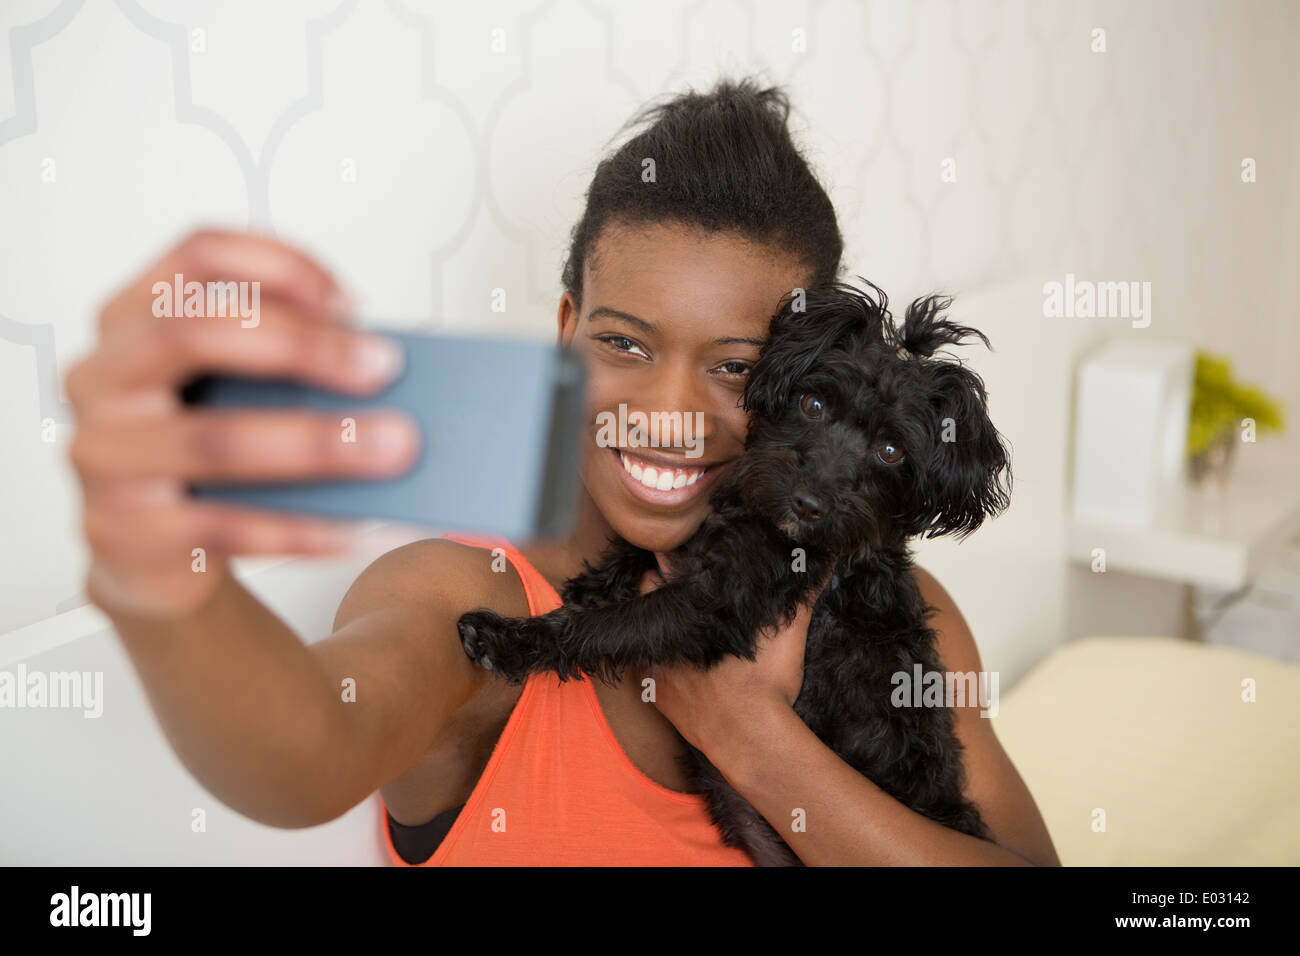 A young girl taking a selfy of her small pet dog and herself. - Stock Image